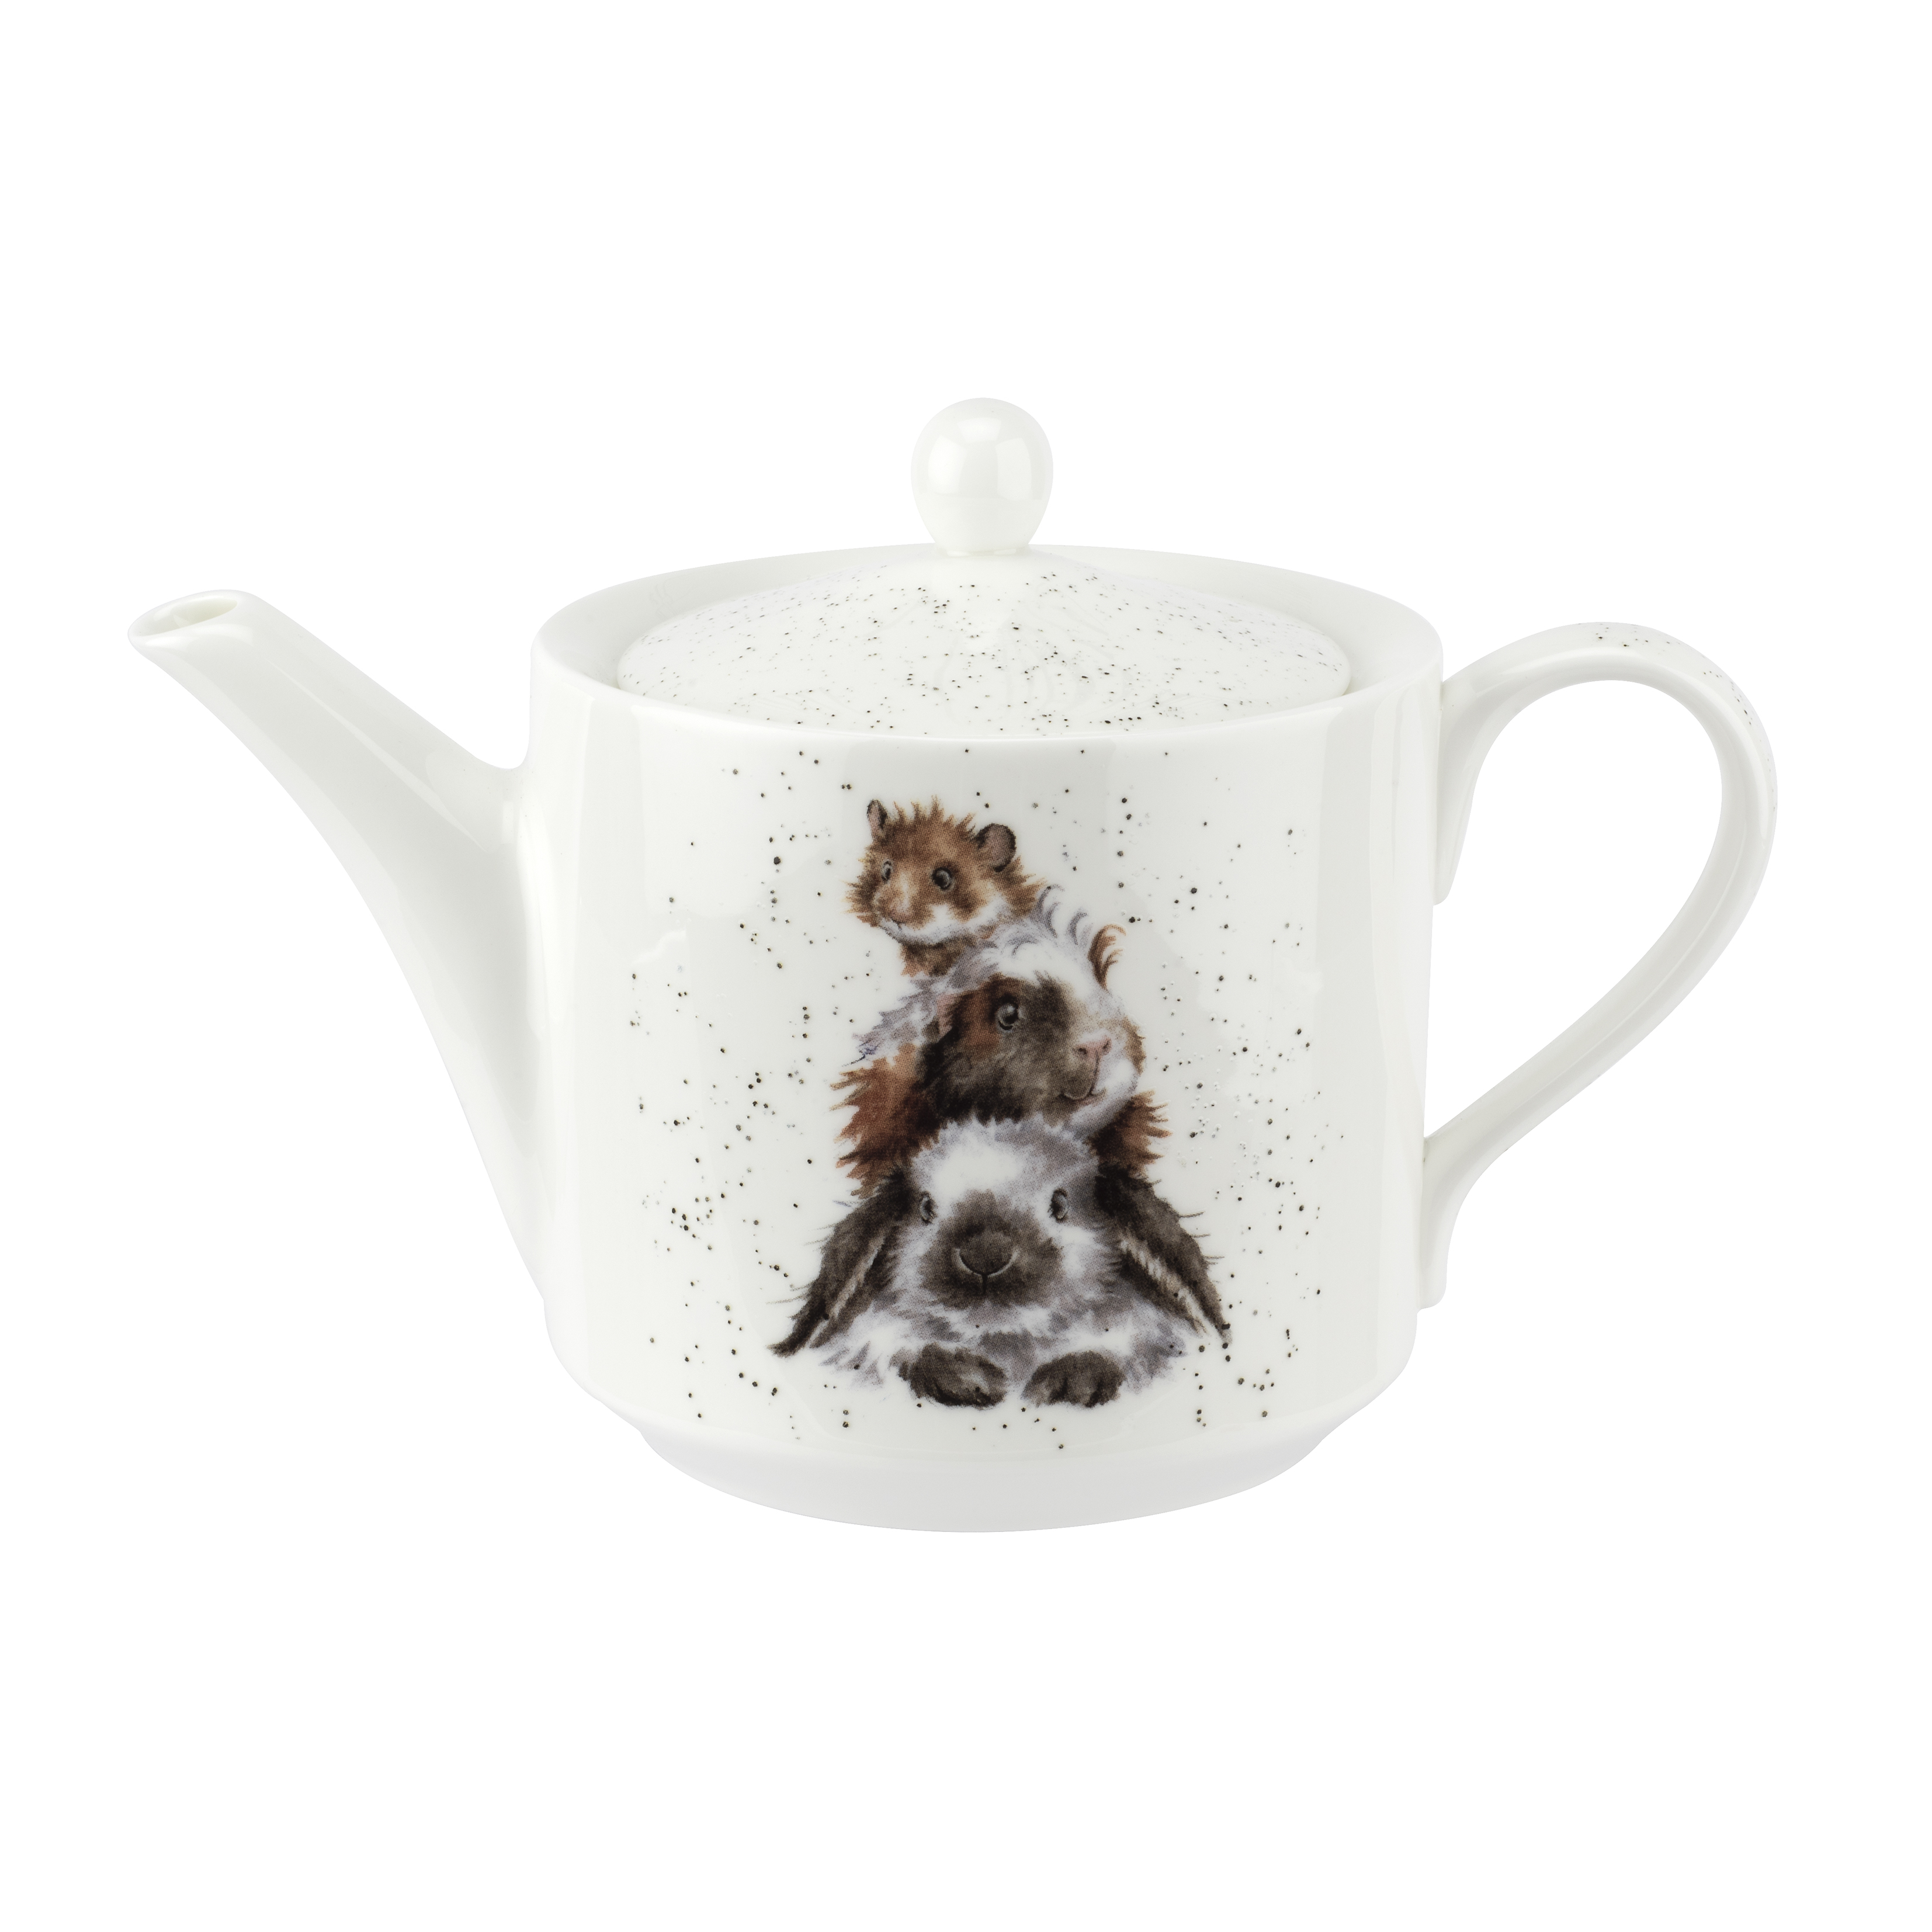 Royal Worcester Wrendale Designs Teapot 1 Pint (Piggy In The Middle) image number 0